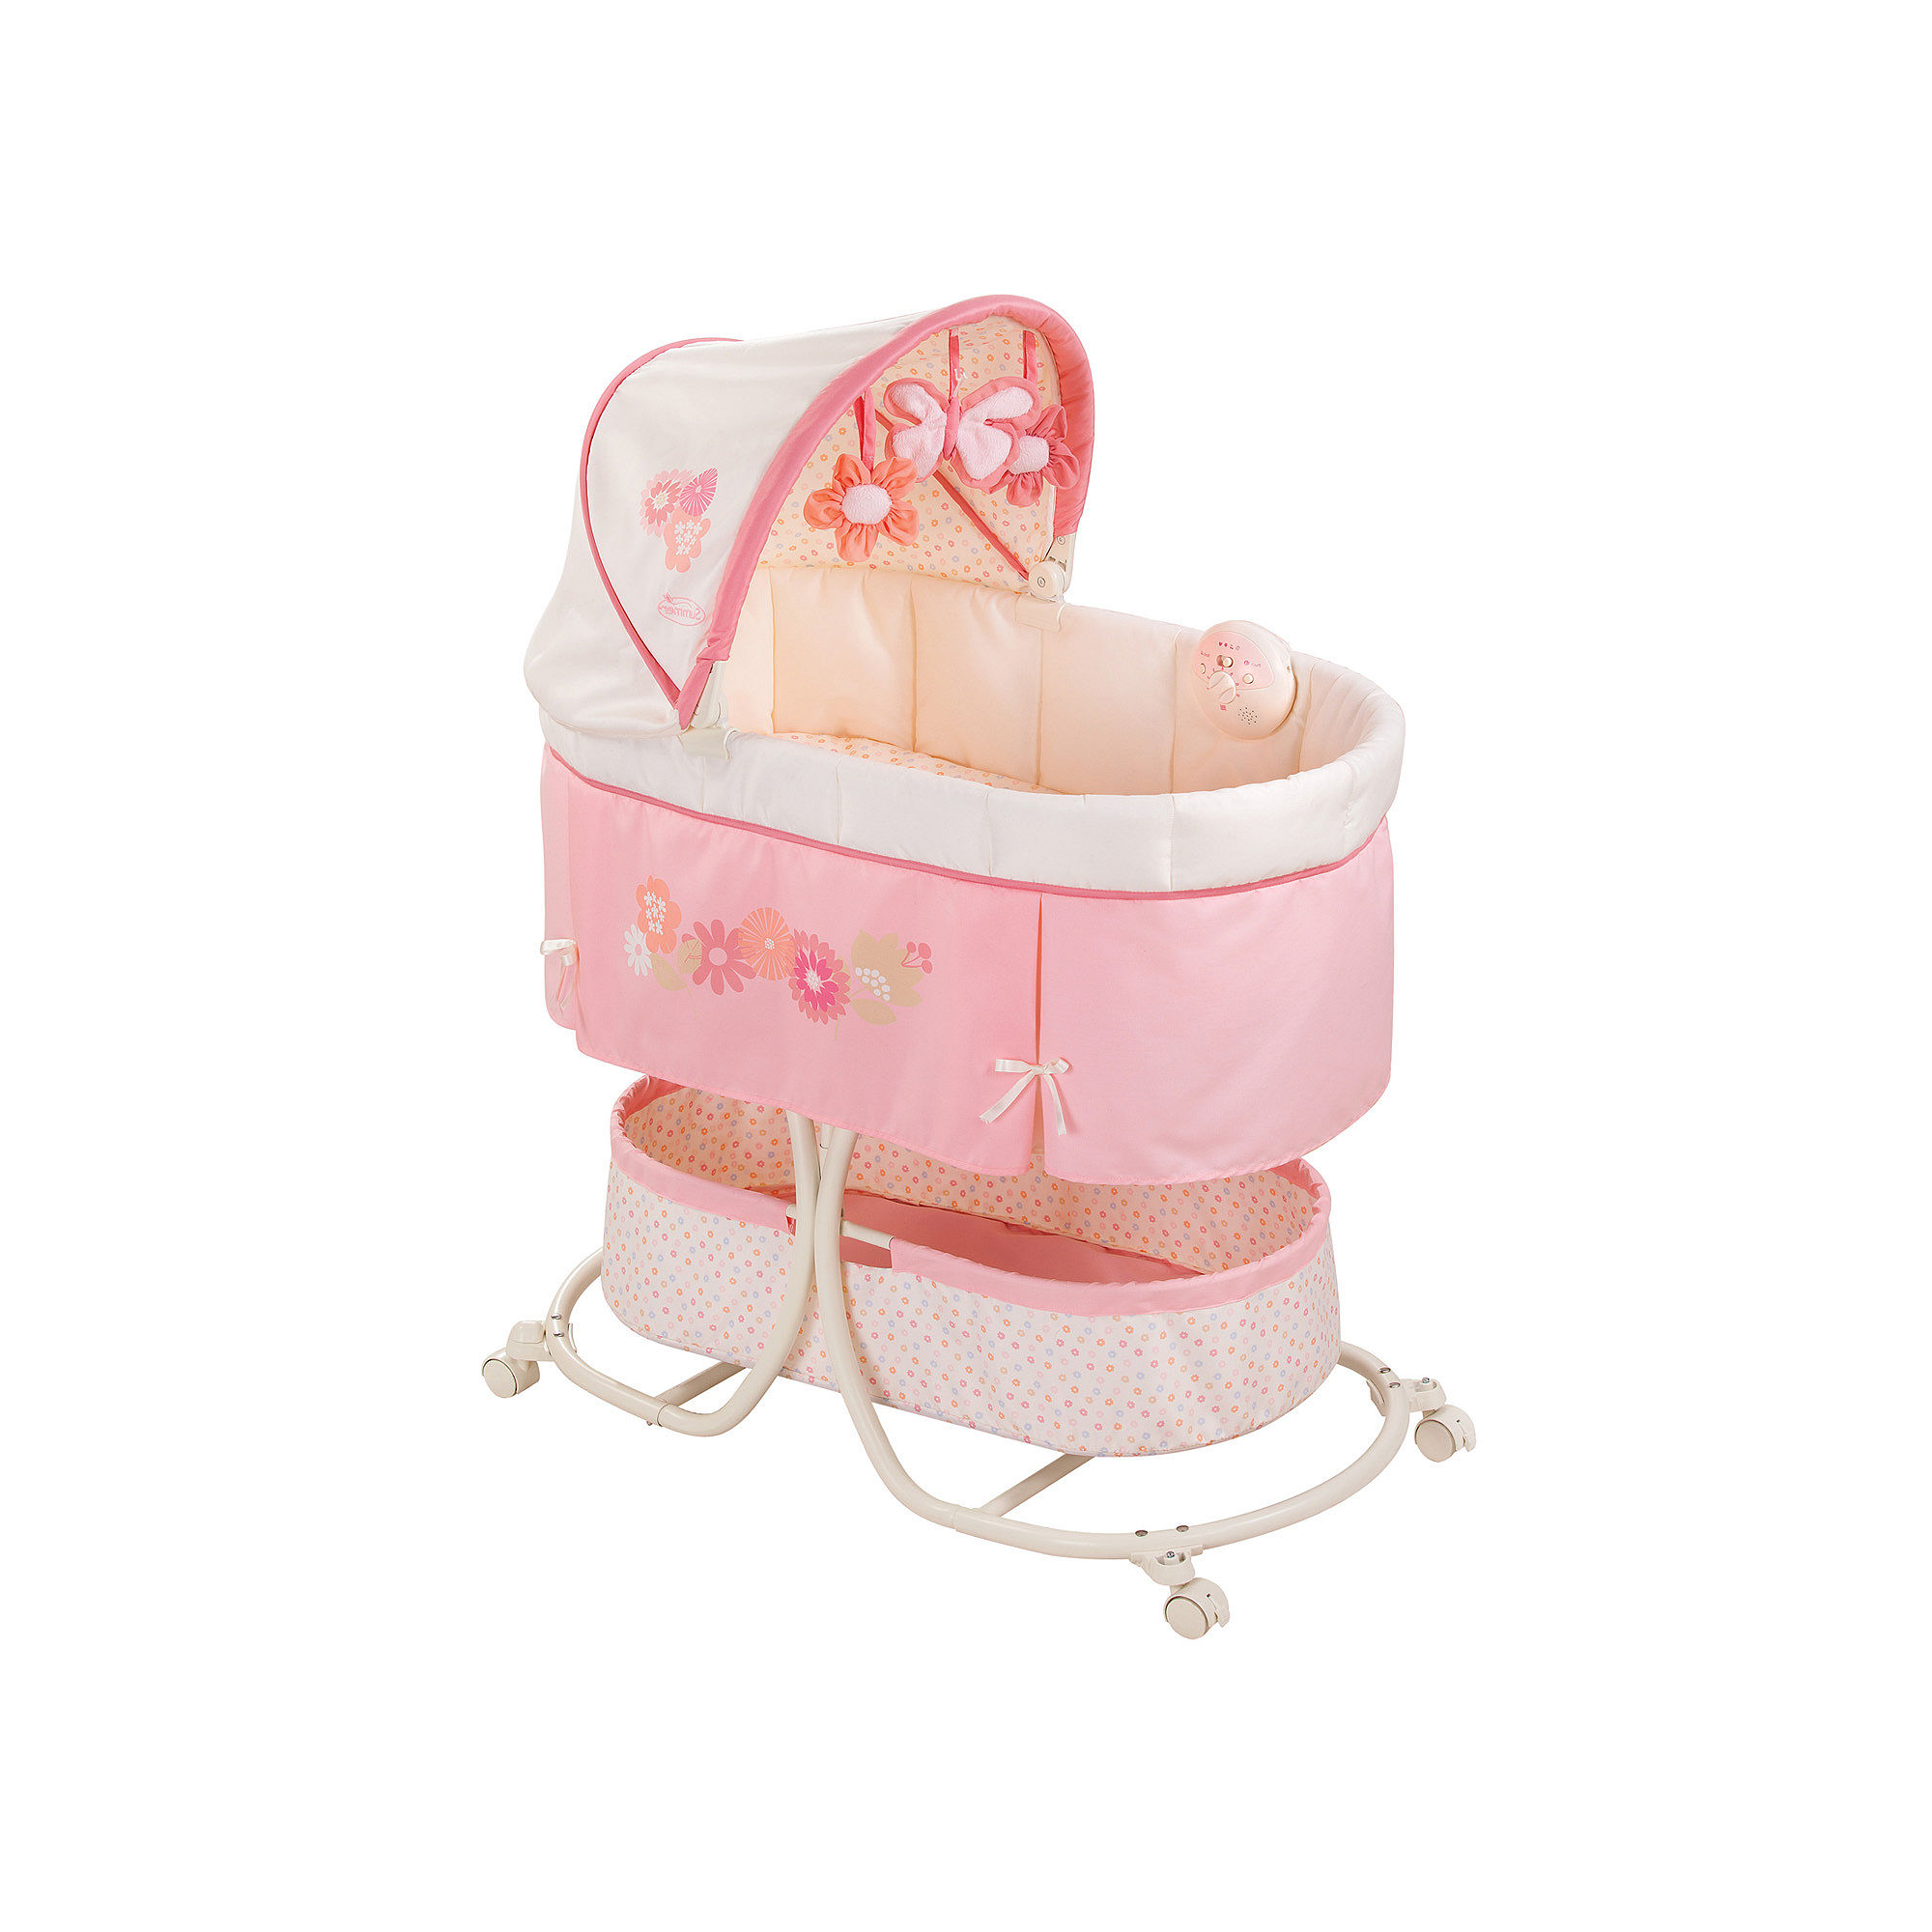 Fisher Price Soothing Motions Bassinet Portable Bed Reviews